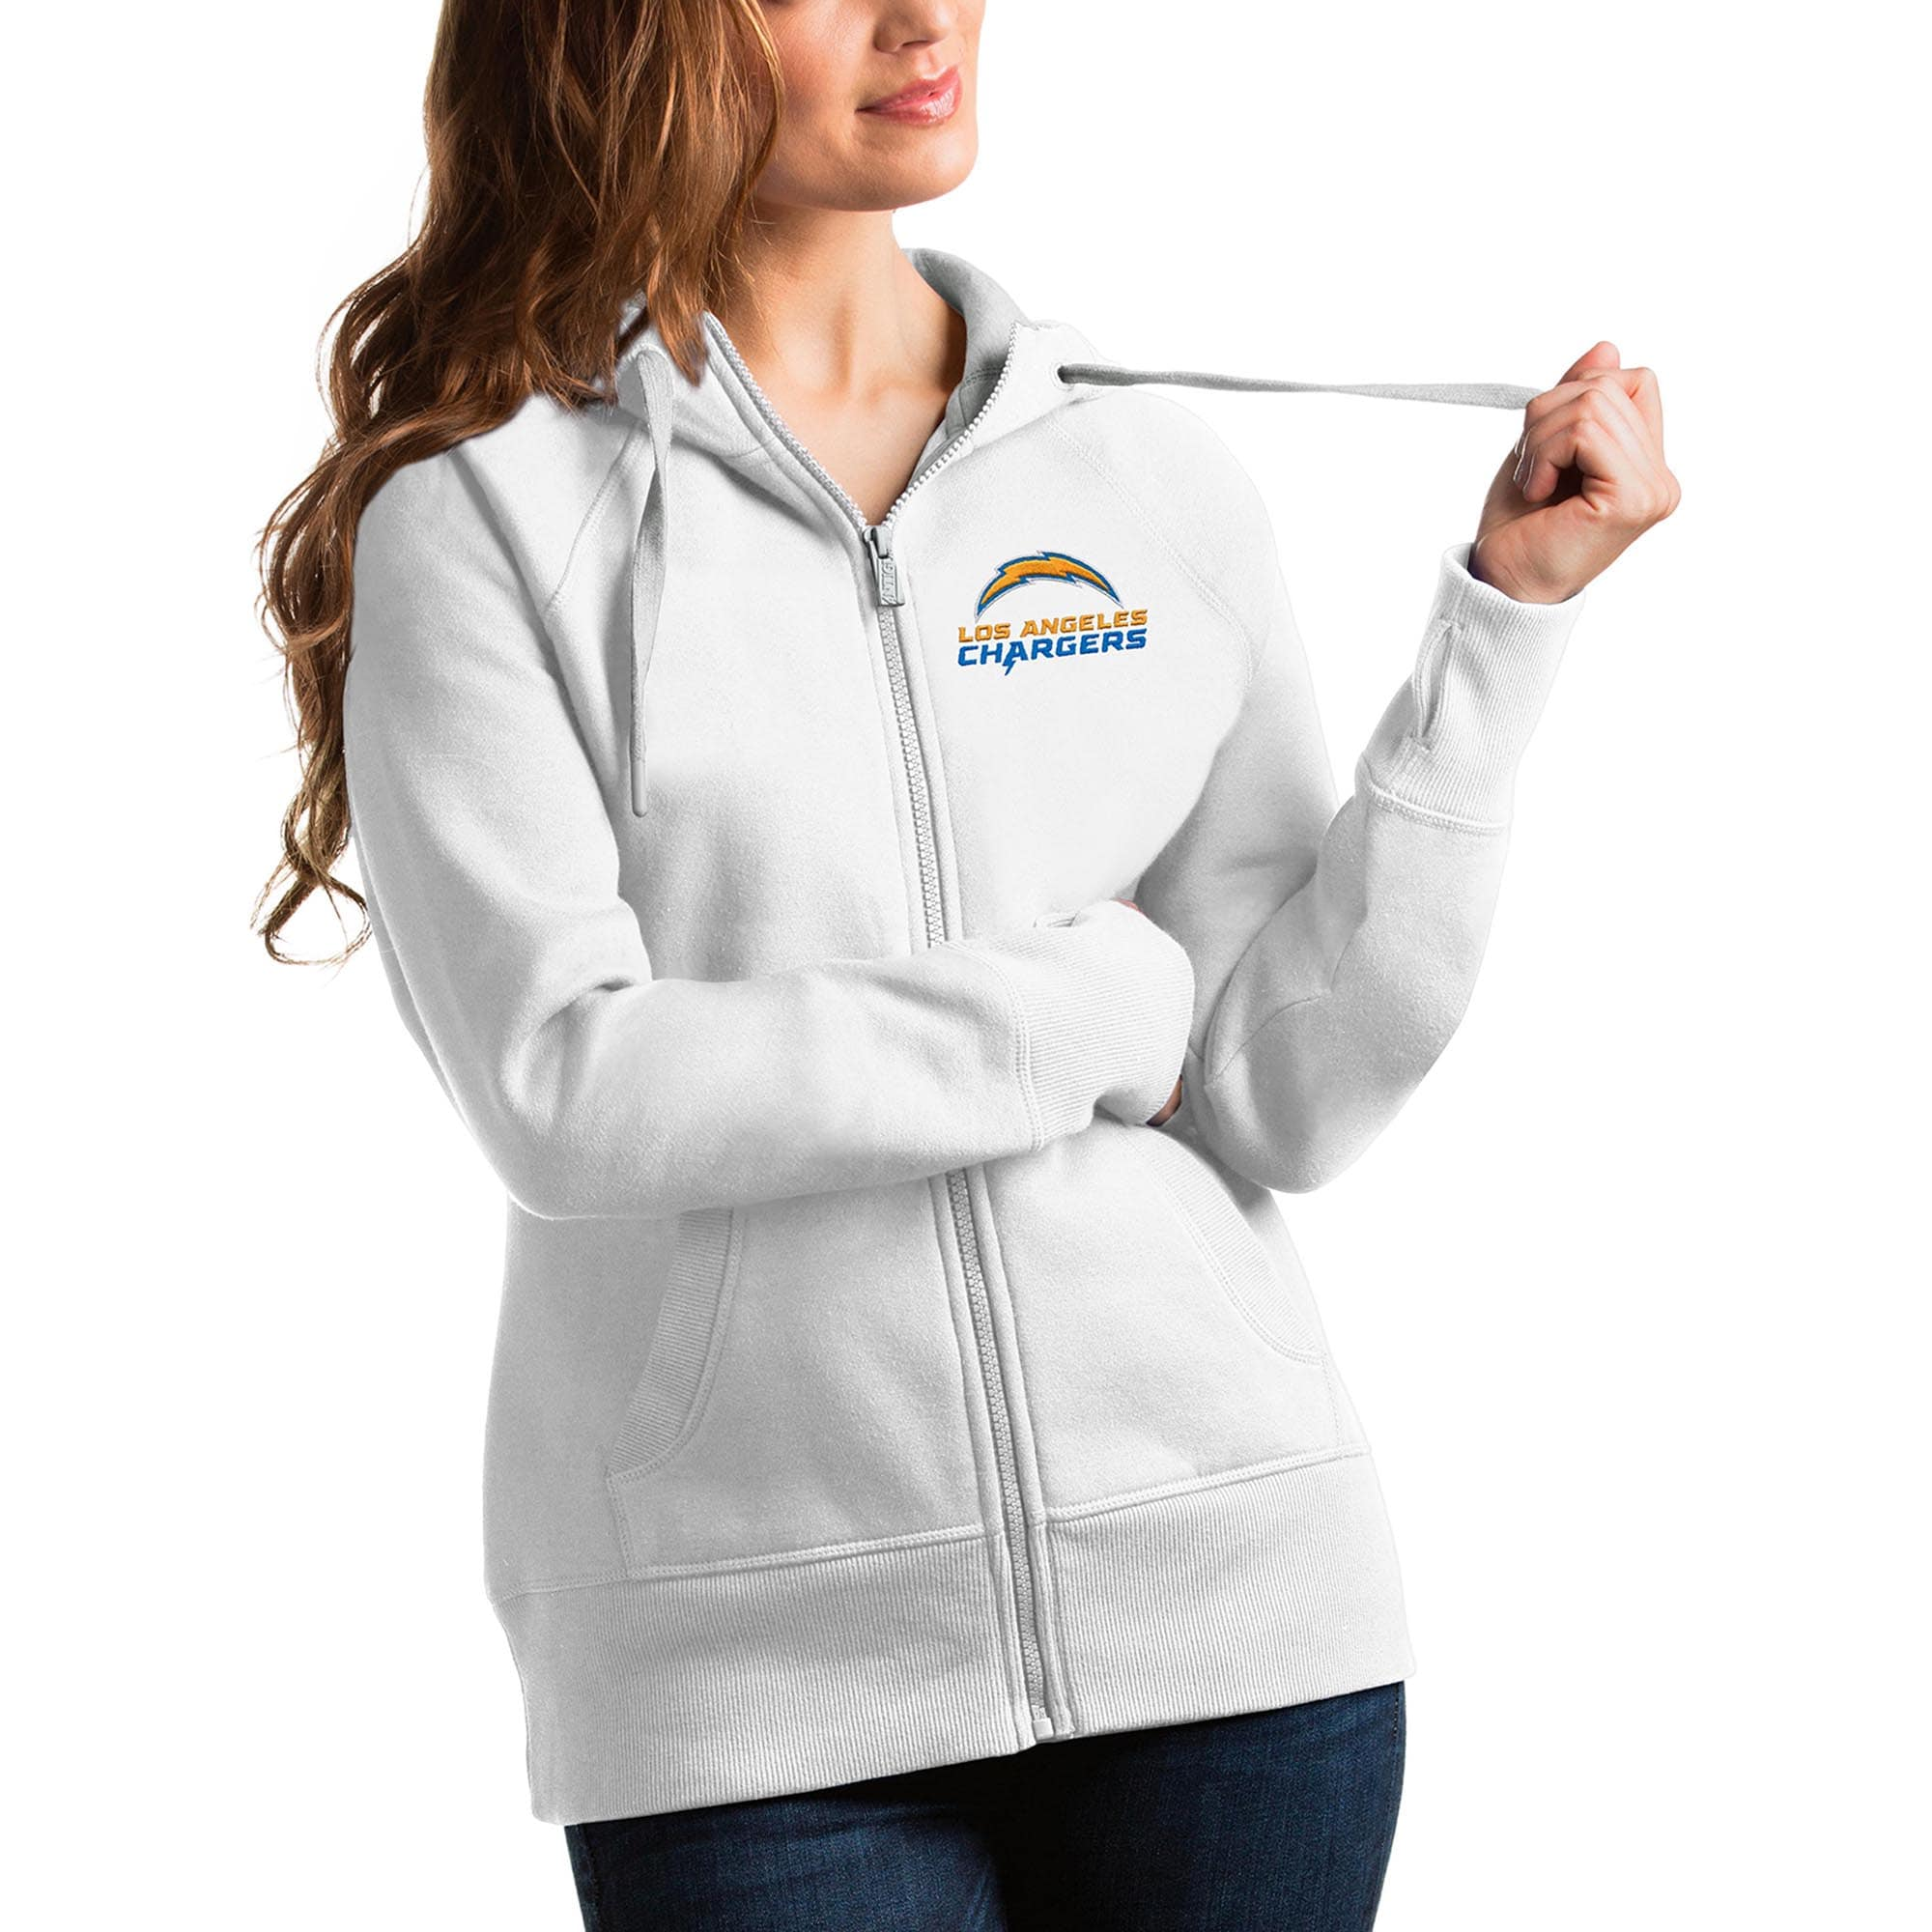 Los Angeles Chargers Antigua Women's Victory Full-Zip Hoodie - White